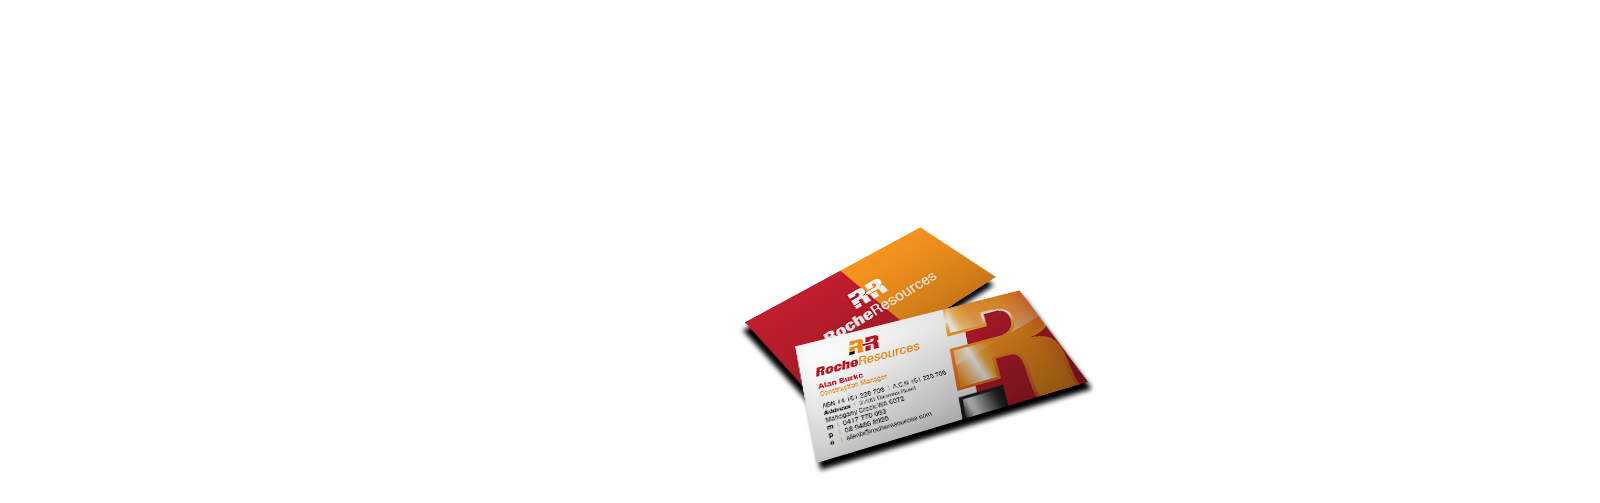 Business cards sydney logos logo design sydney graphic business cards reheart Image collections